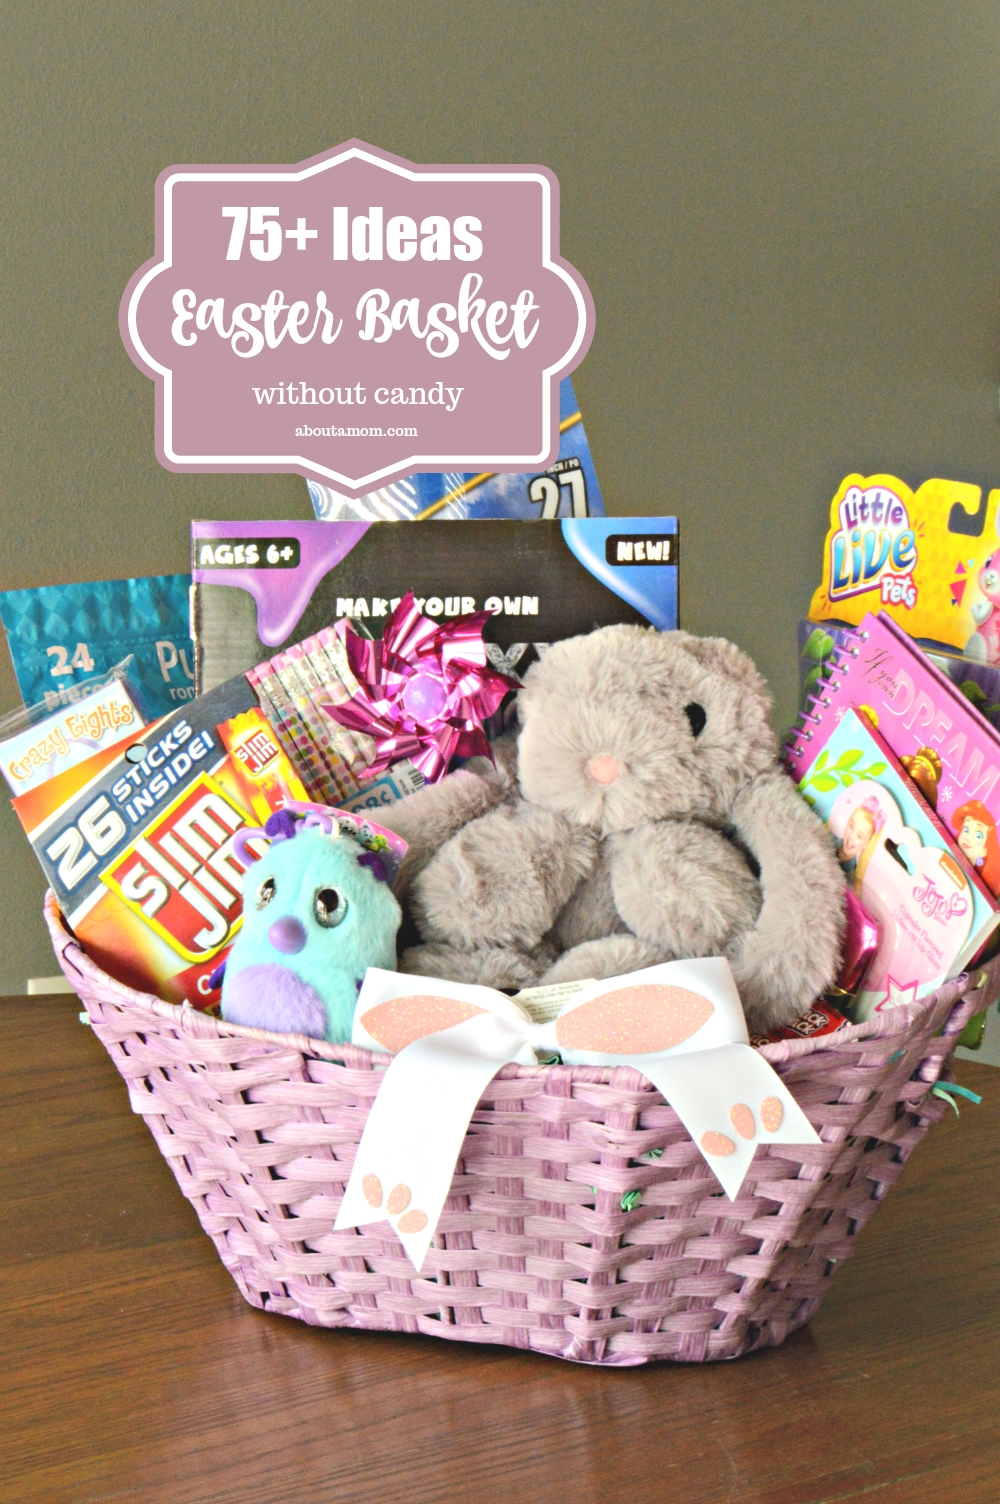 10 Beautiful Easter Baskets Ideas For Adults 75 fun easter basket ideas about a mom 1 2020